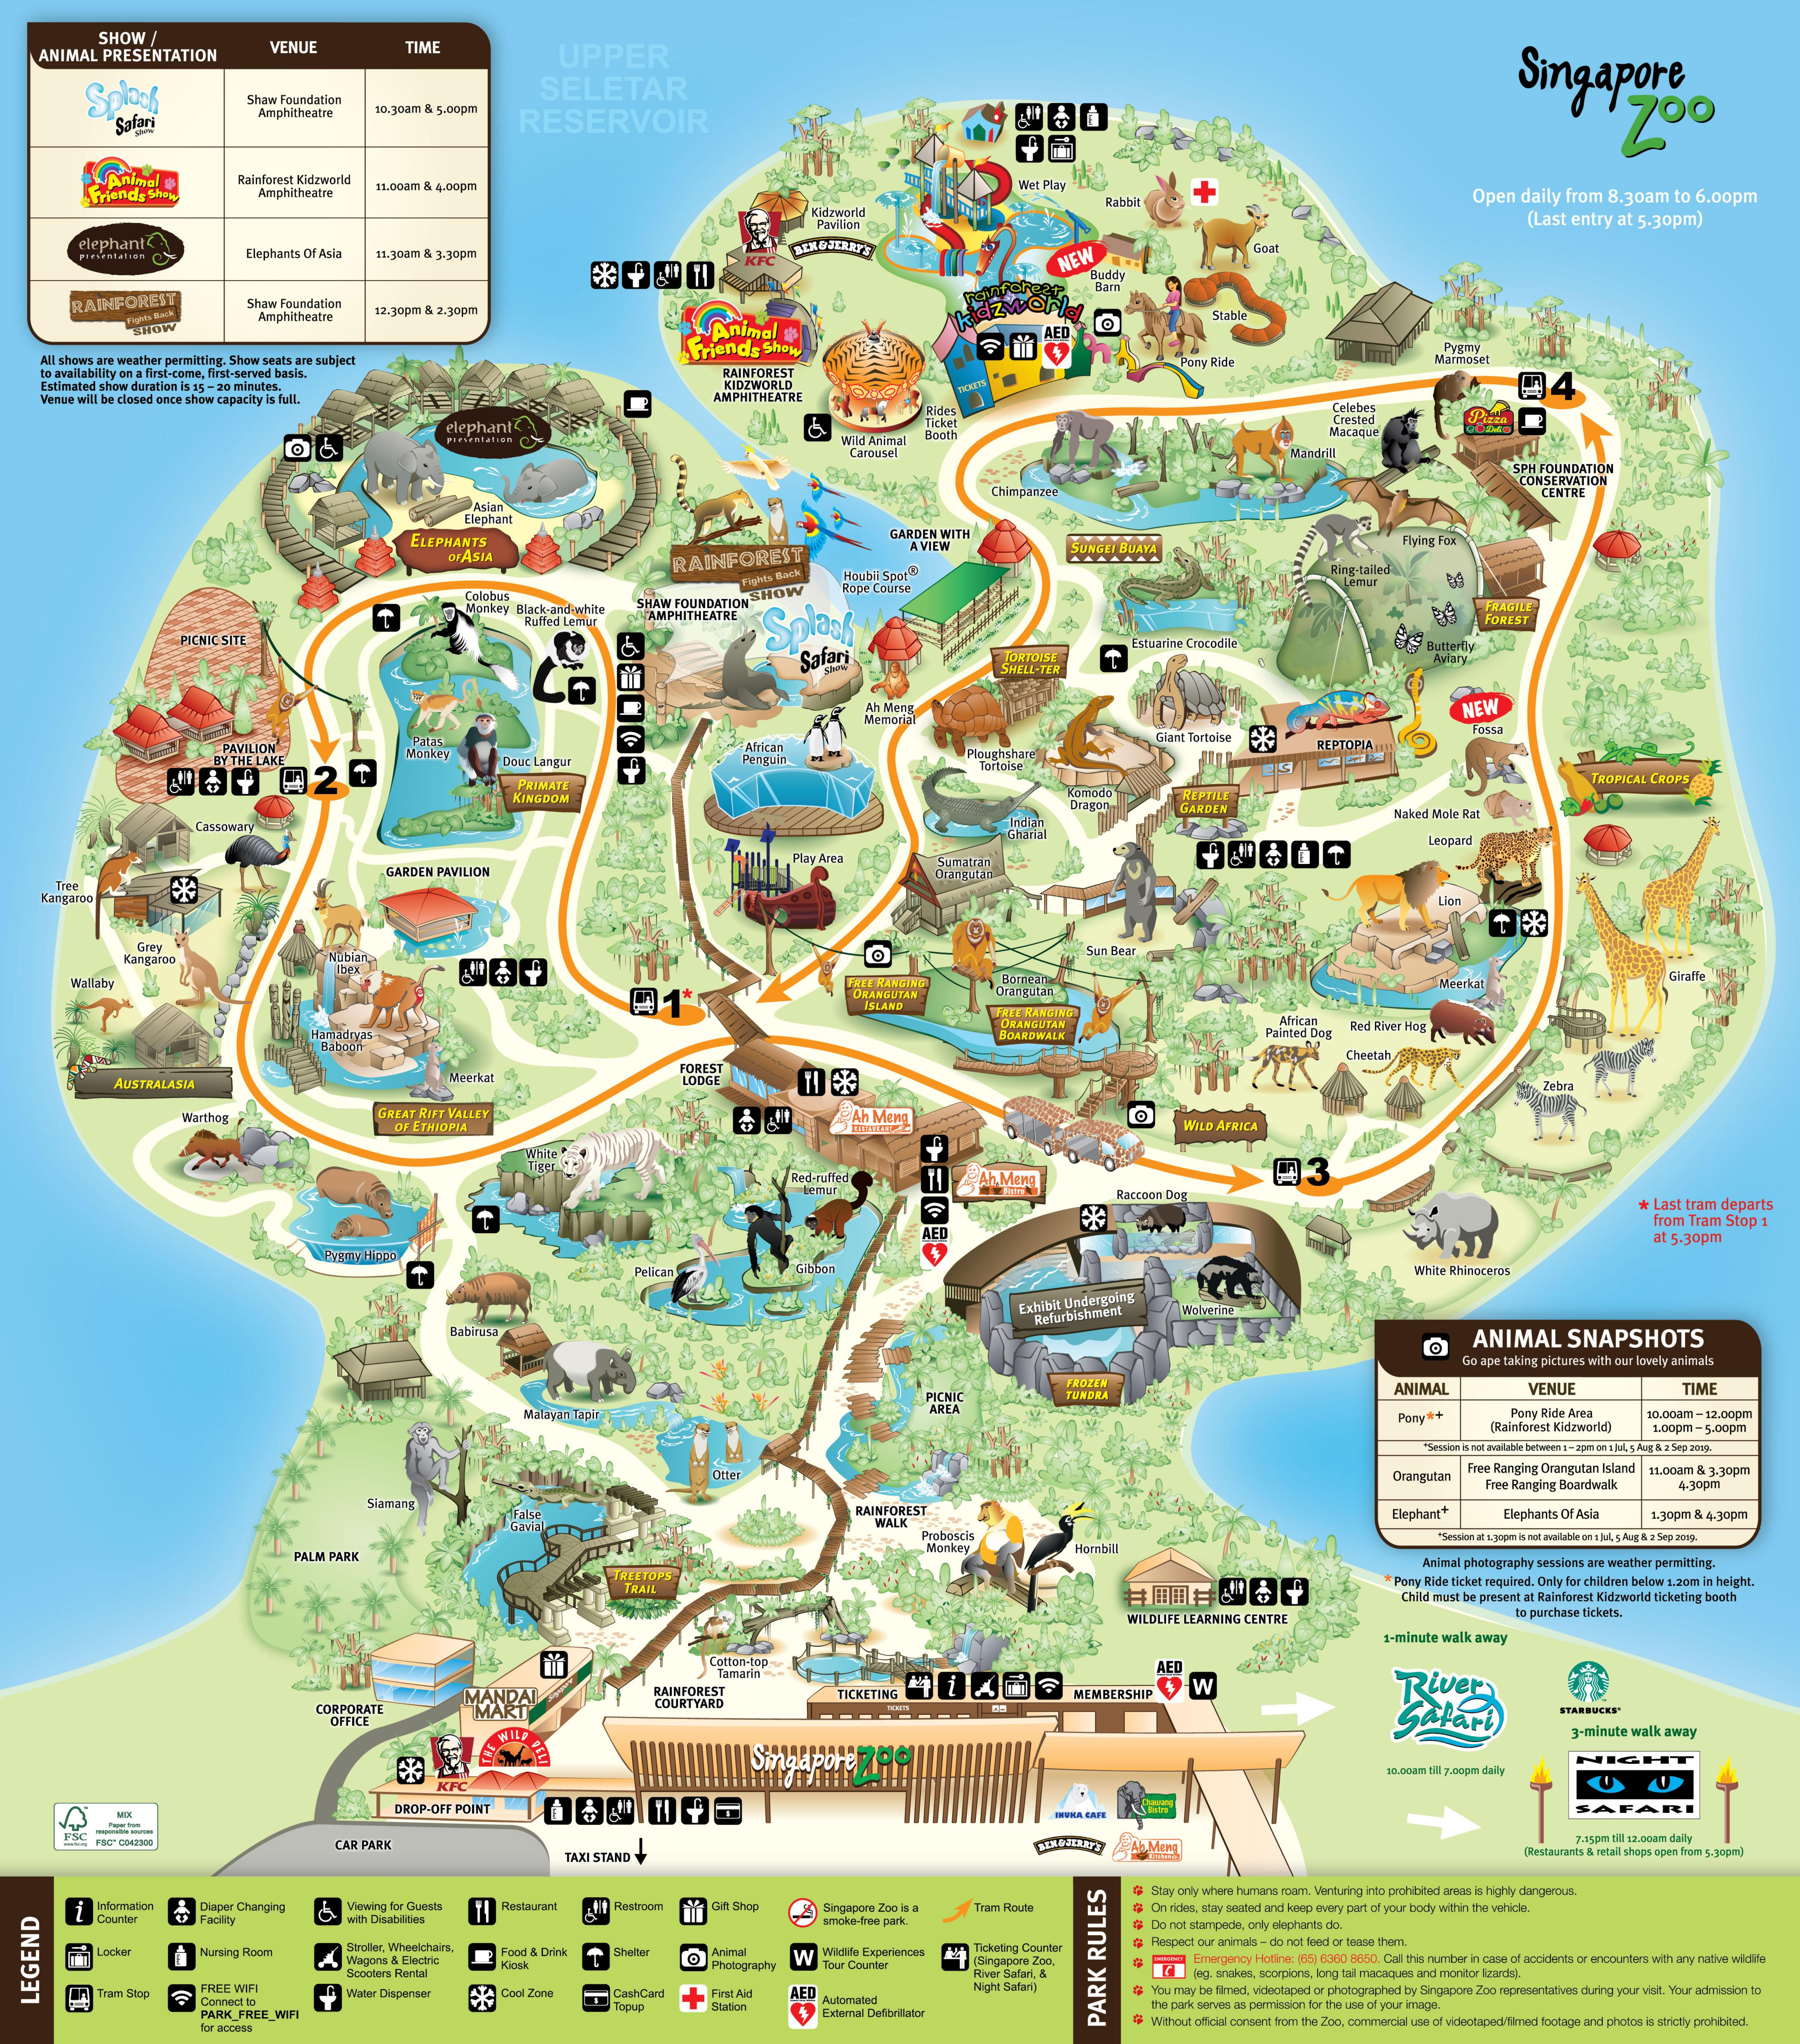 Singapore zoo clipart graphic transparent library Singapore Zoo Map - Singapore Zoo | Wildlife Reserves Singapore graphic transparent library